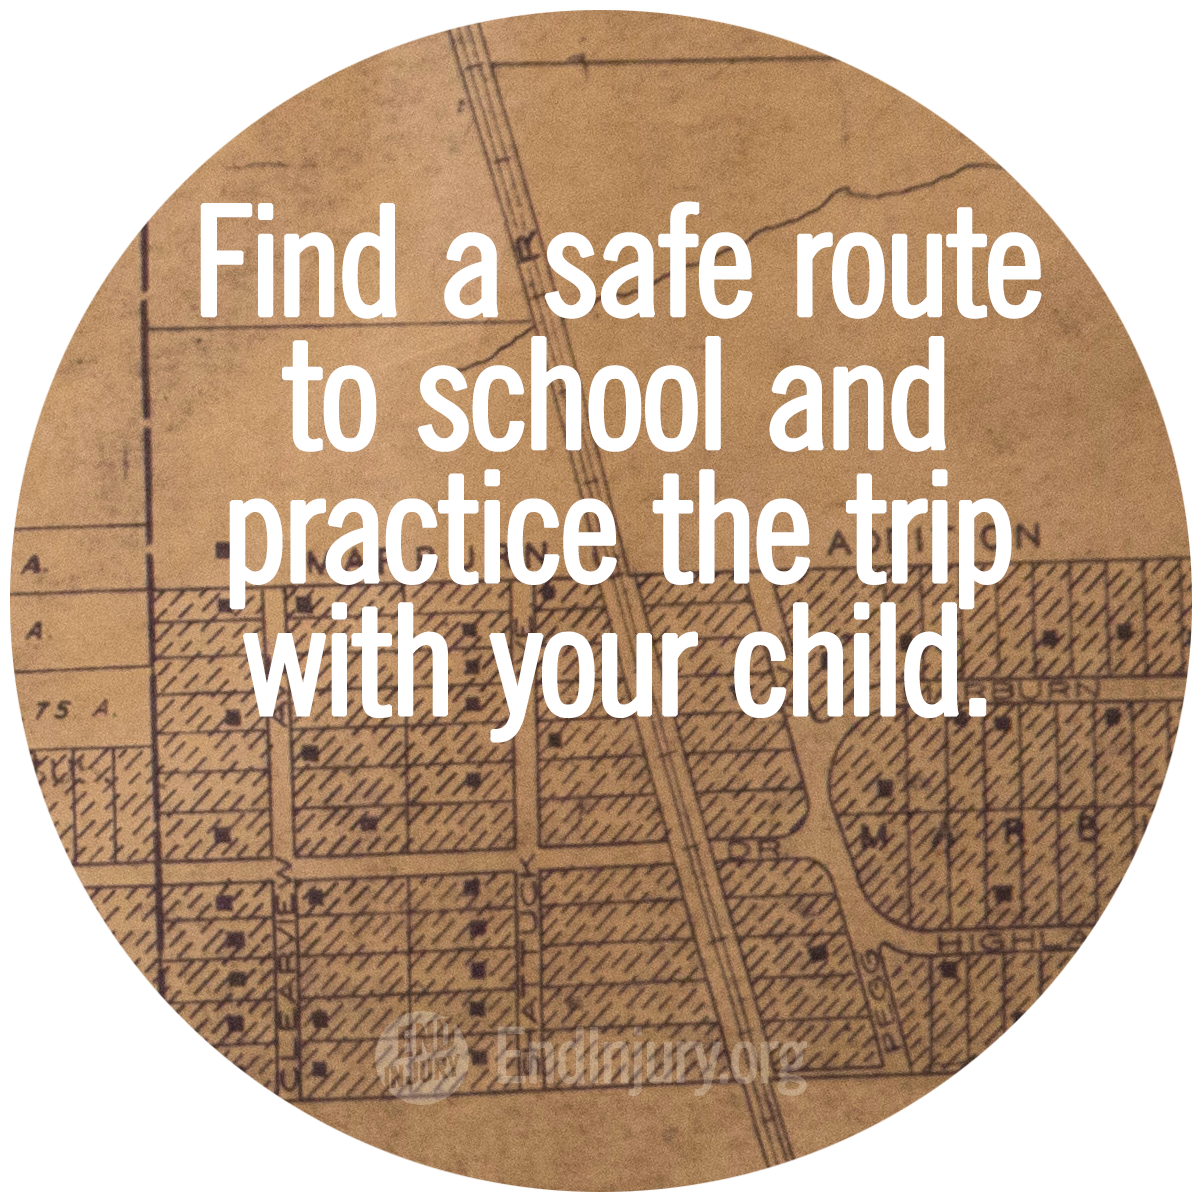 safe-school-route-action-photo.png